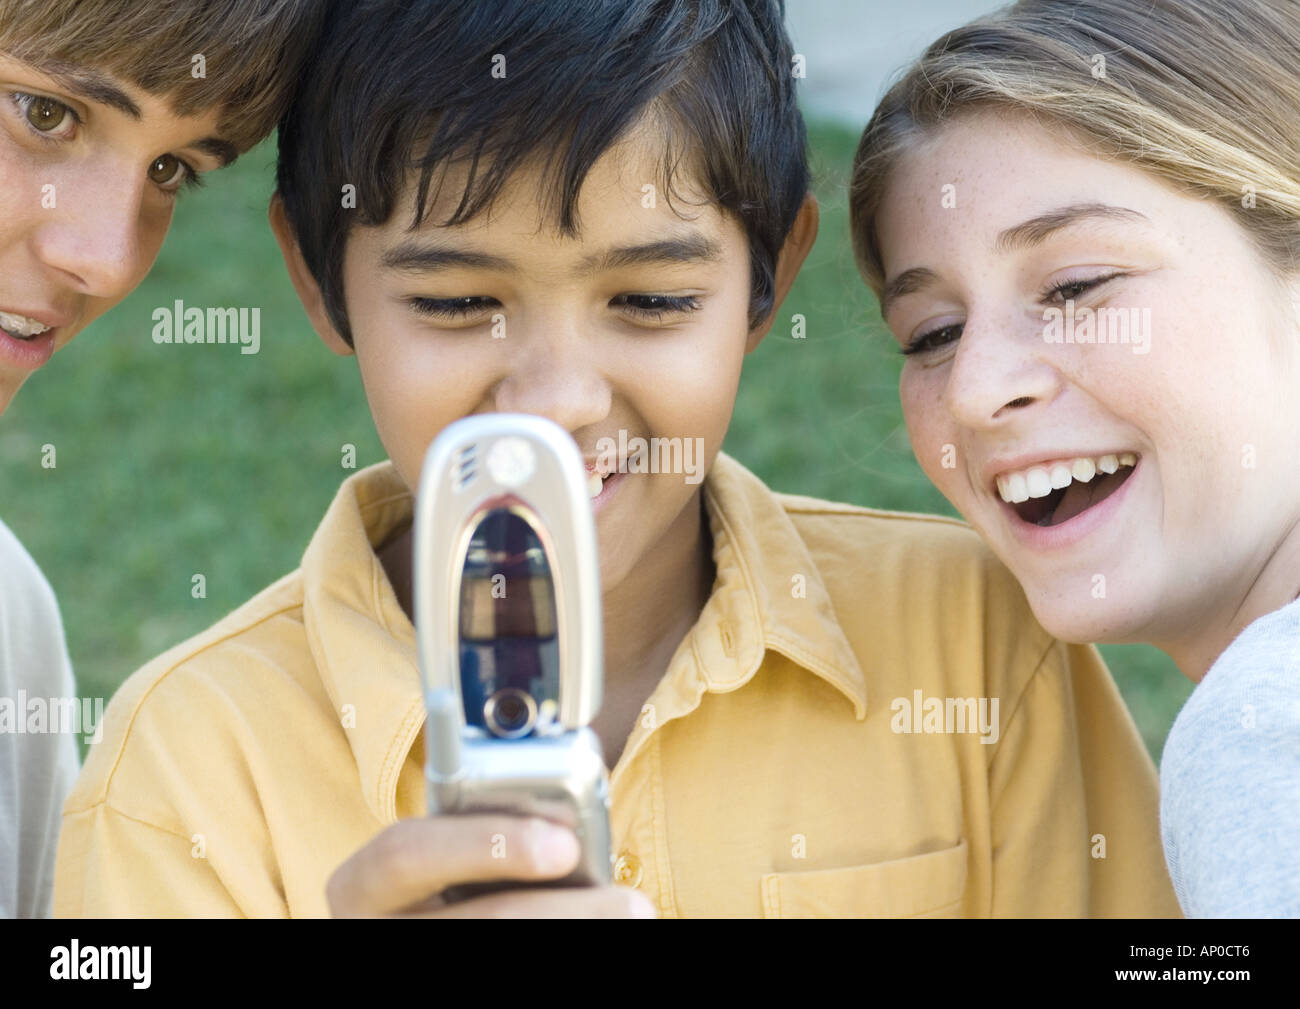 Three preteen kids looking at cell phone - Stock Image